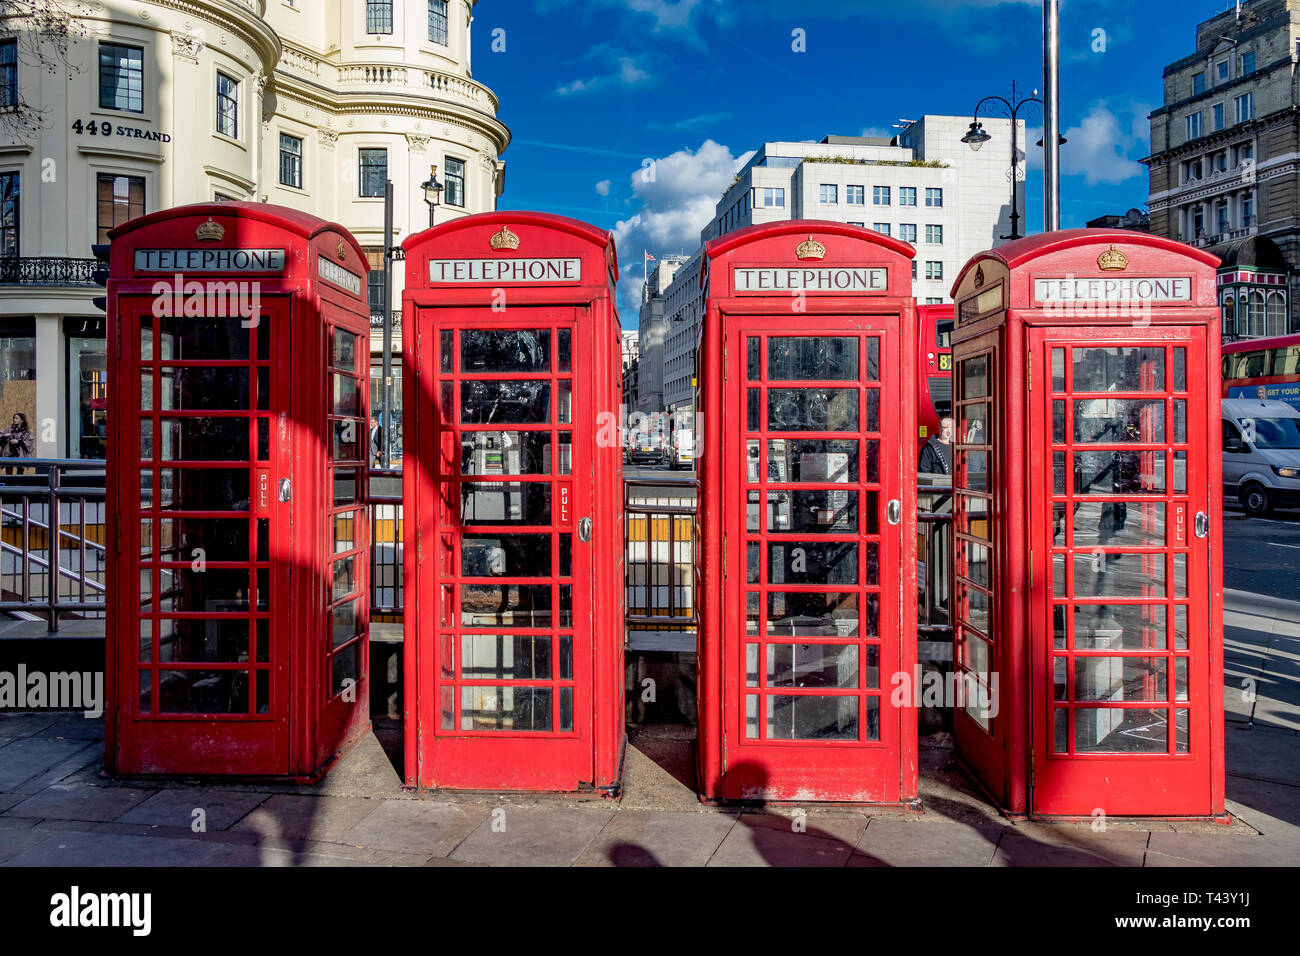 A row of Red public telephone boxes on The Strand at The junction with Duncannon St ,London WC2 - Stock Image